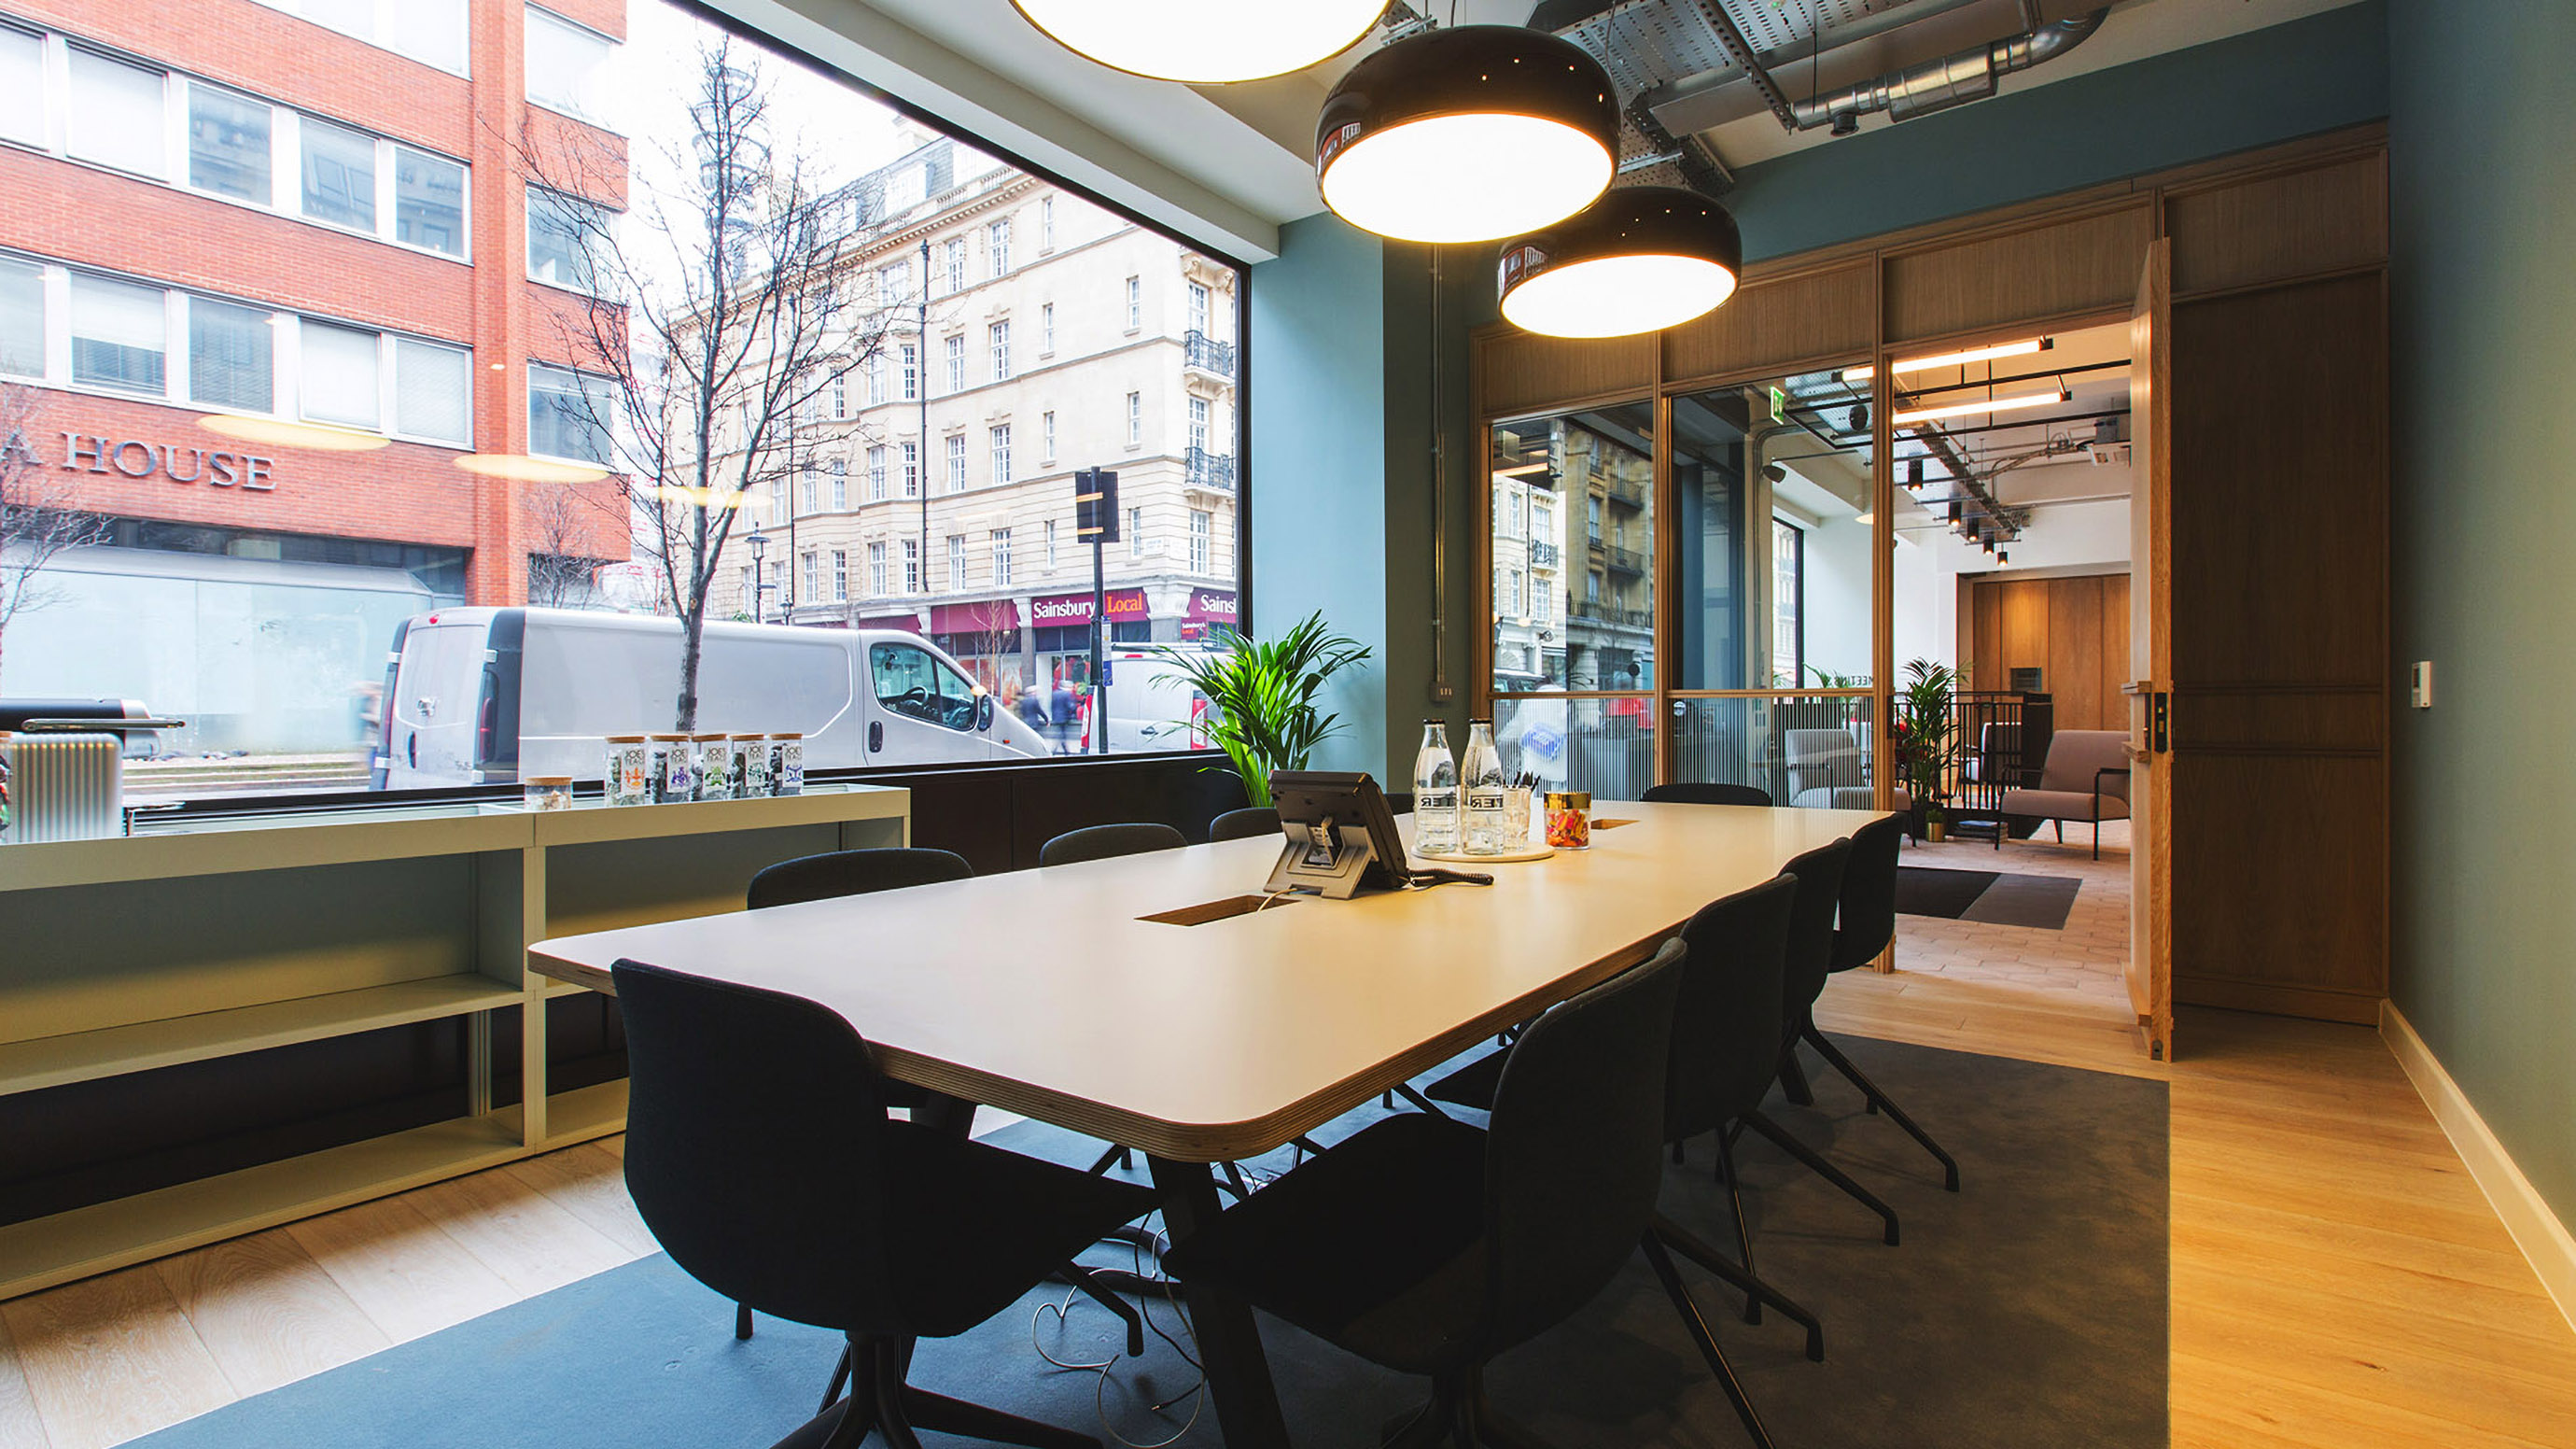 Medium meeting room with pale wooden table and dark chairs and street view at TOG building Smiths Building London